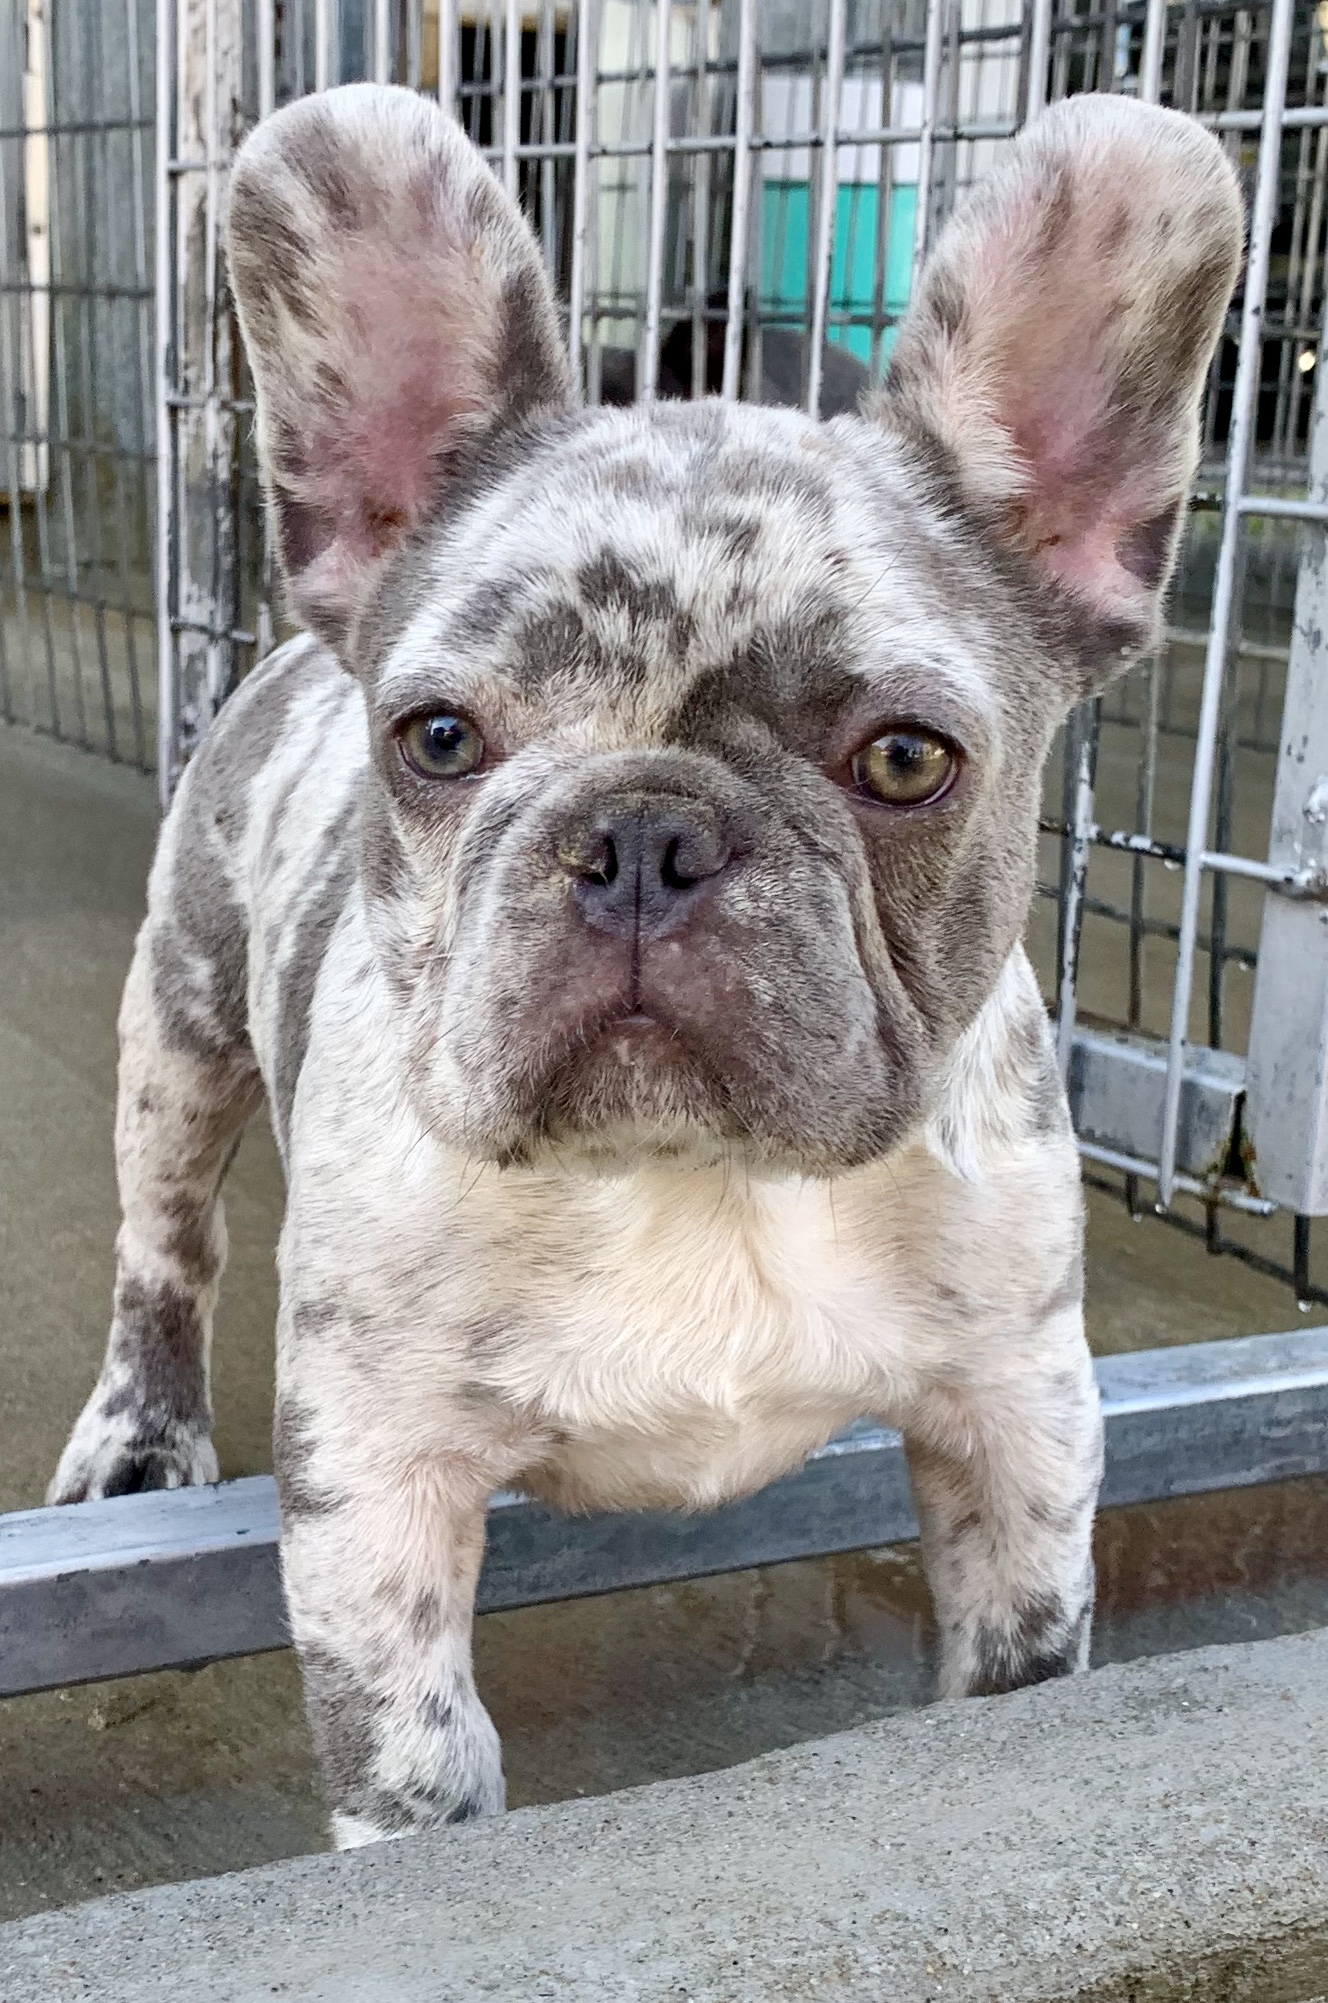 One of Kim's adult French Bulldogs